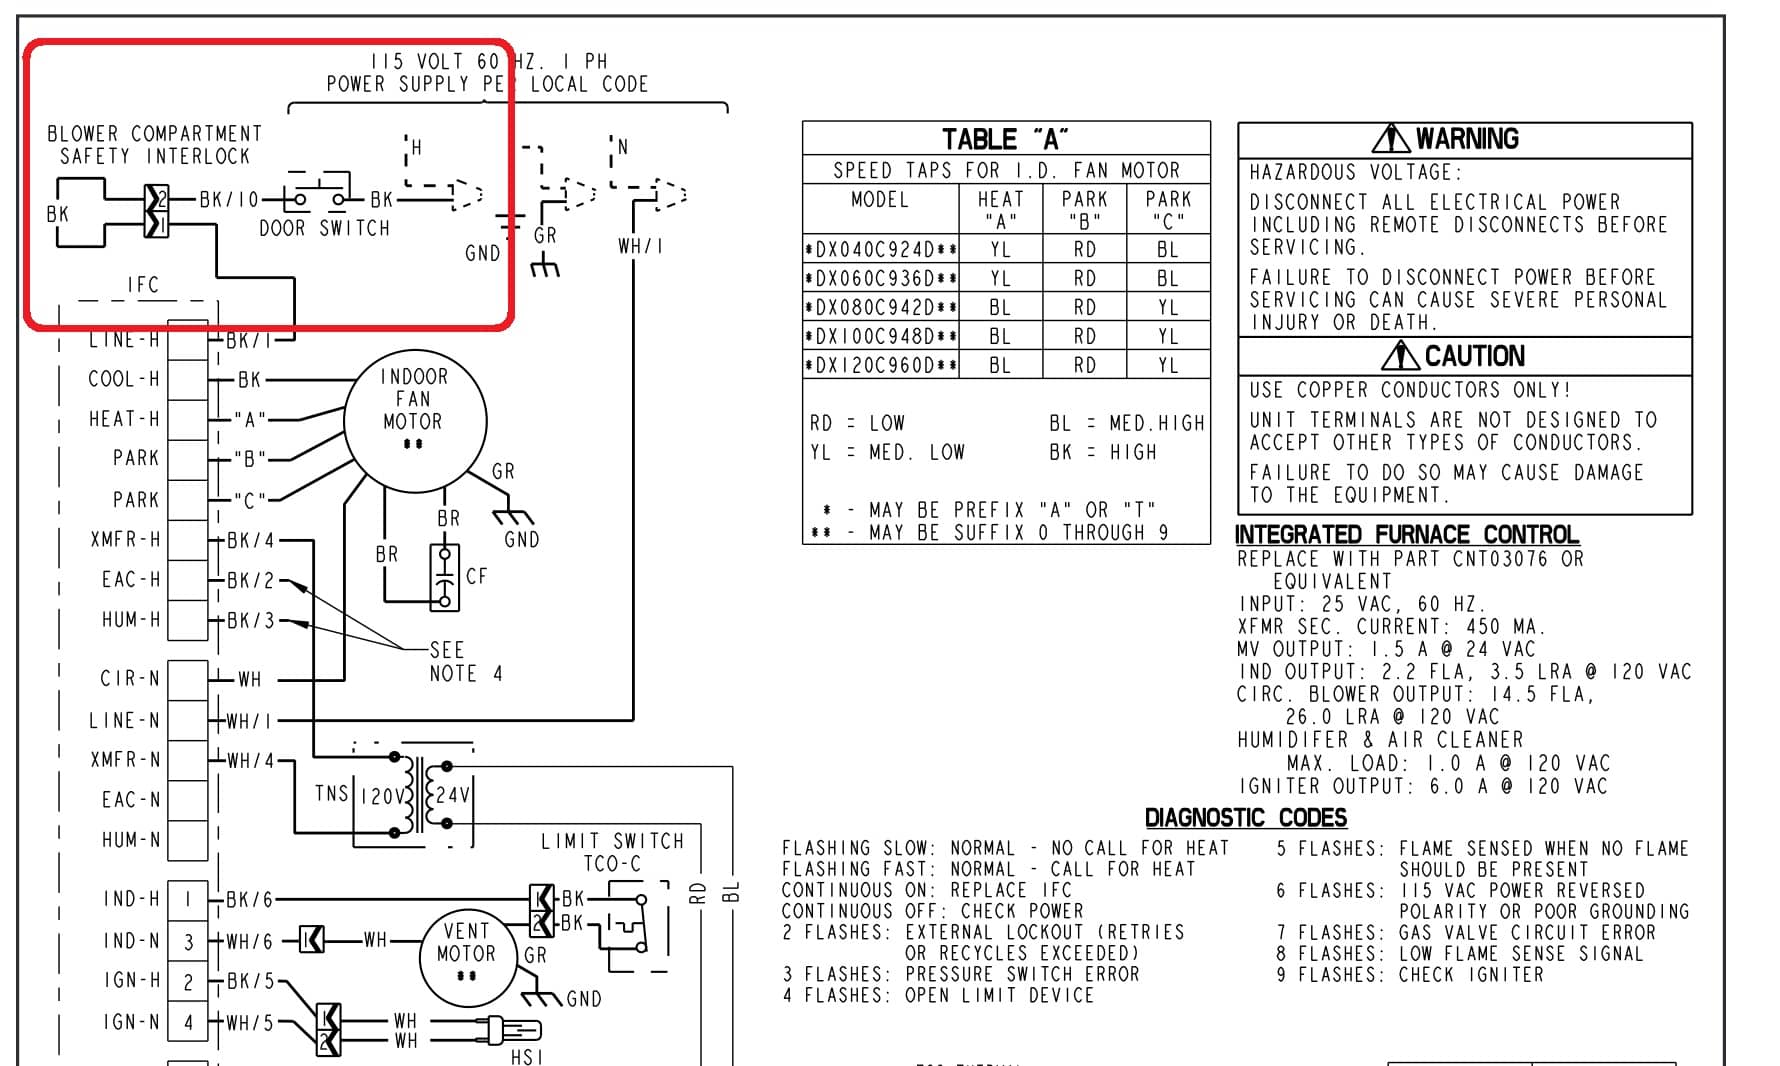 Trane_Furnace_Wiring_PARTIAL_023 trane xr80 wiring diagram trane xr80 parts manual \u2022 wiring  at n-0.co